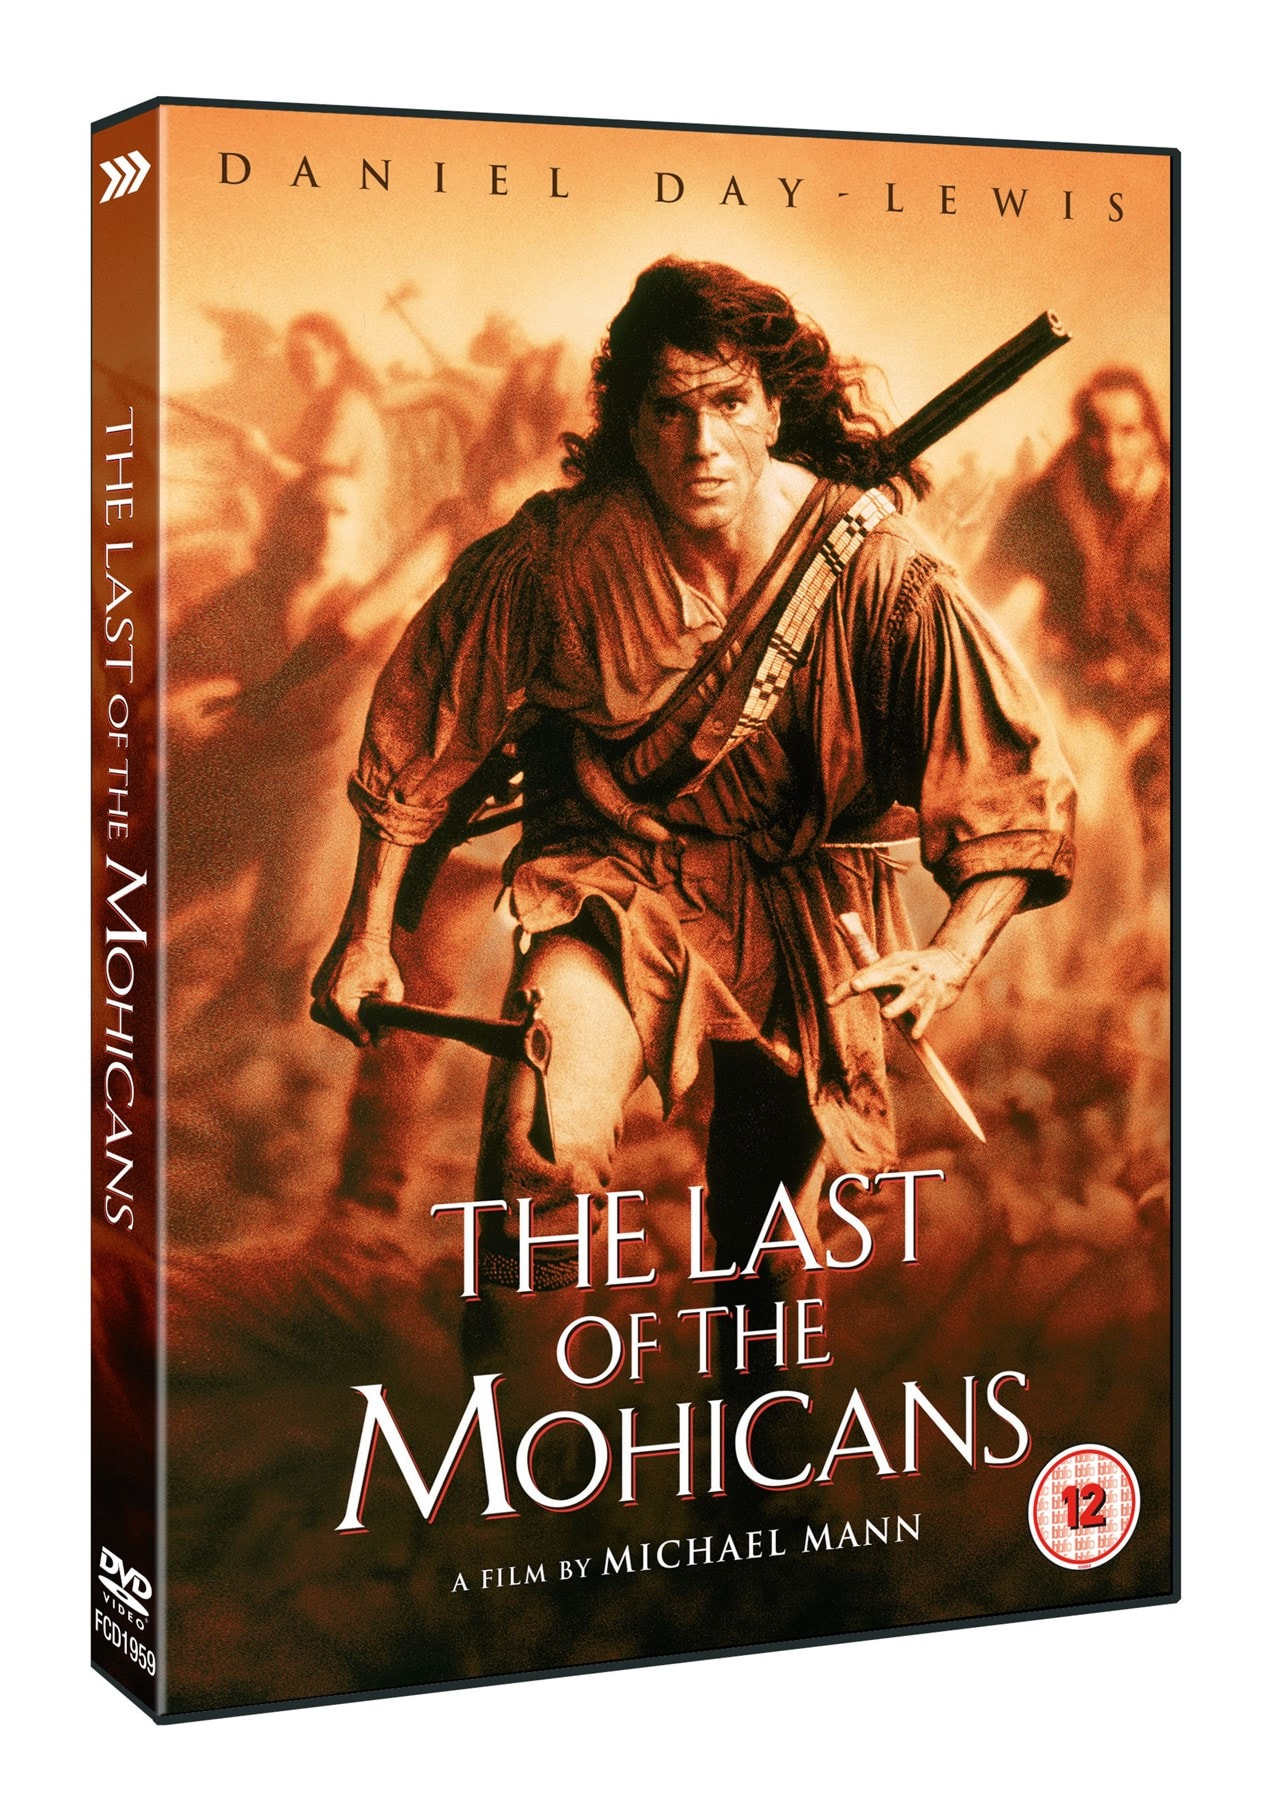 The Last of the Mohicans - 2